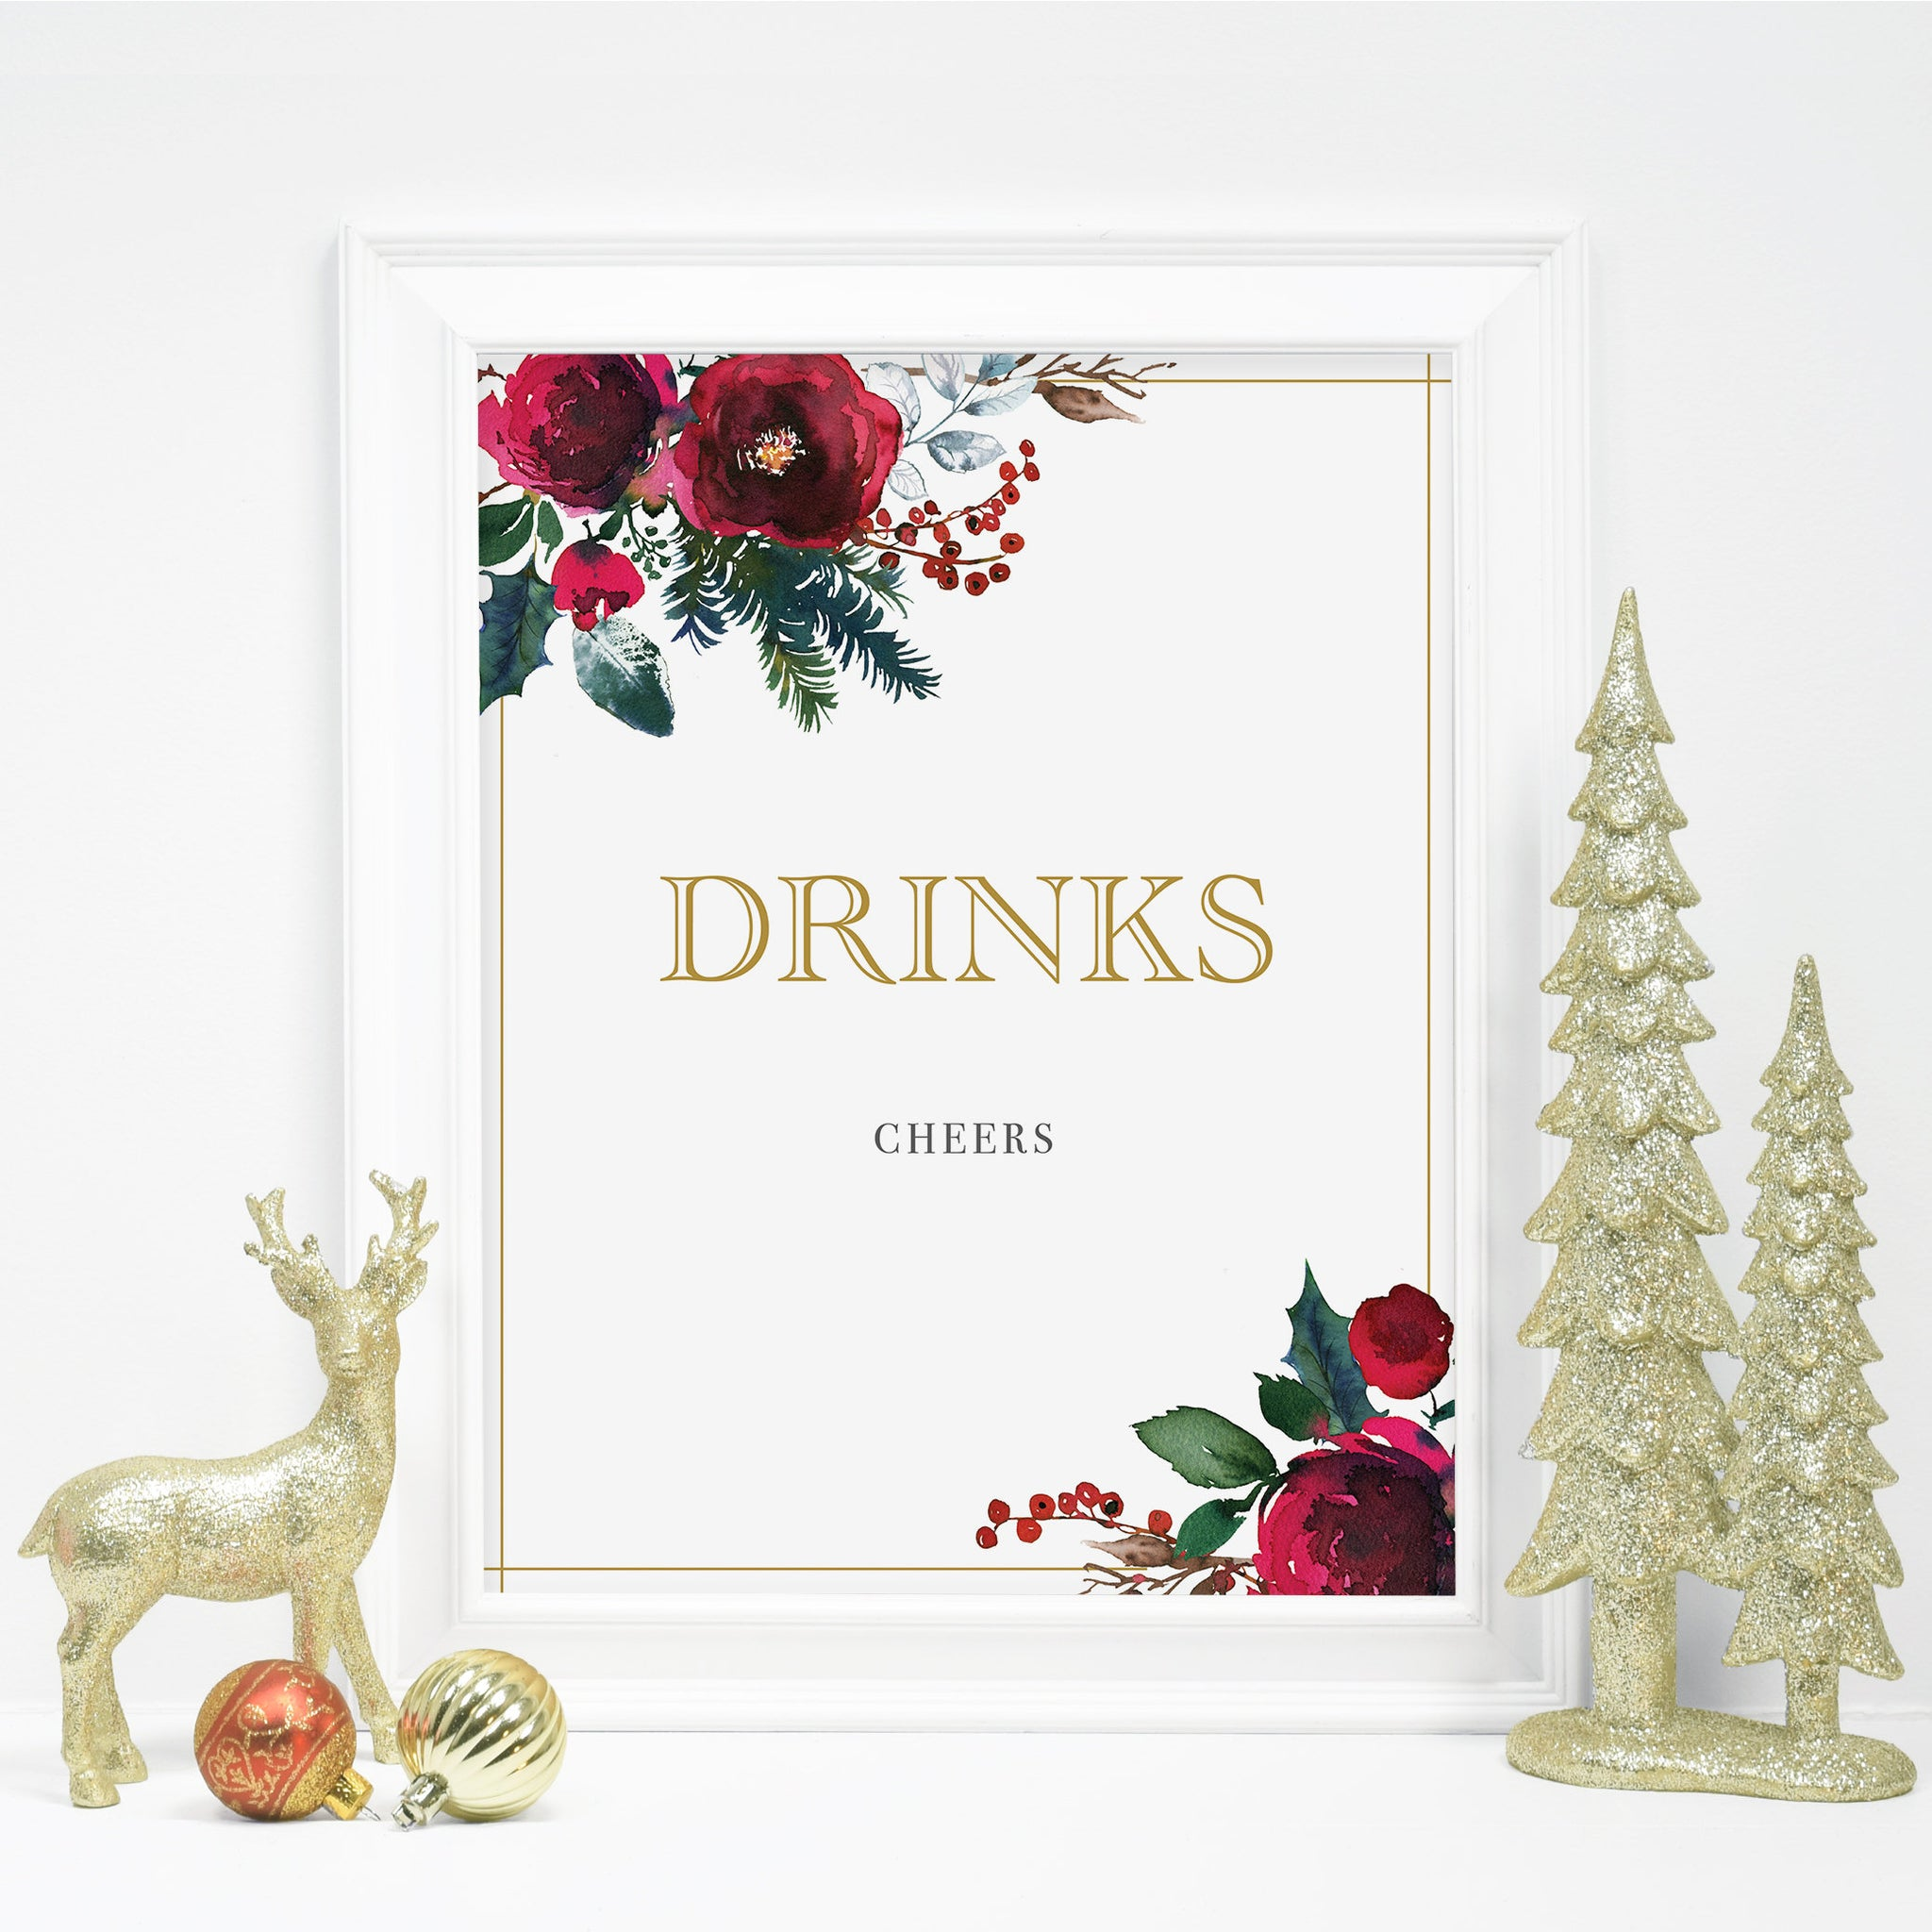 Christmas Party Drinks Sign Printable, Christmas Bridal Shower Sign, Holiday Party Printable Decorations, INSTANT DOWNLOAD - CG100 - @PlumPolkaDot